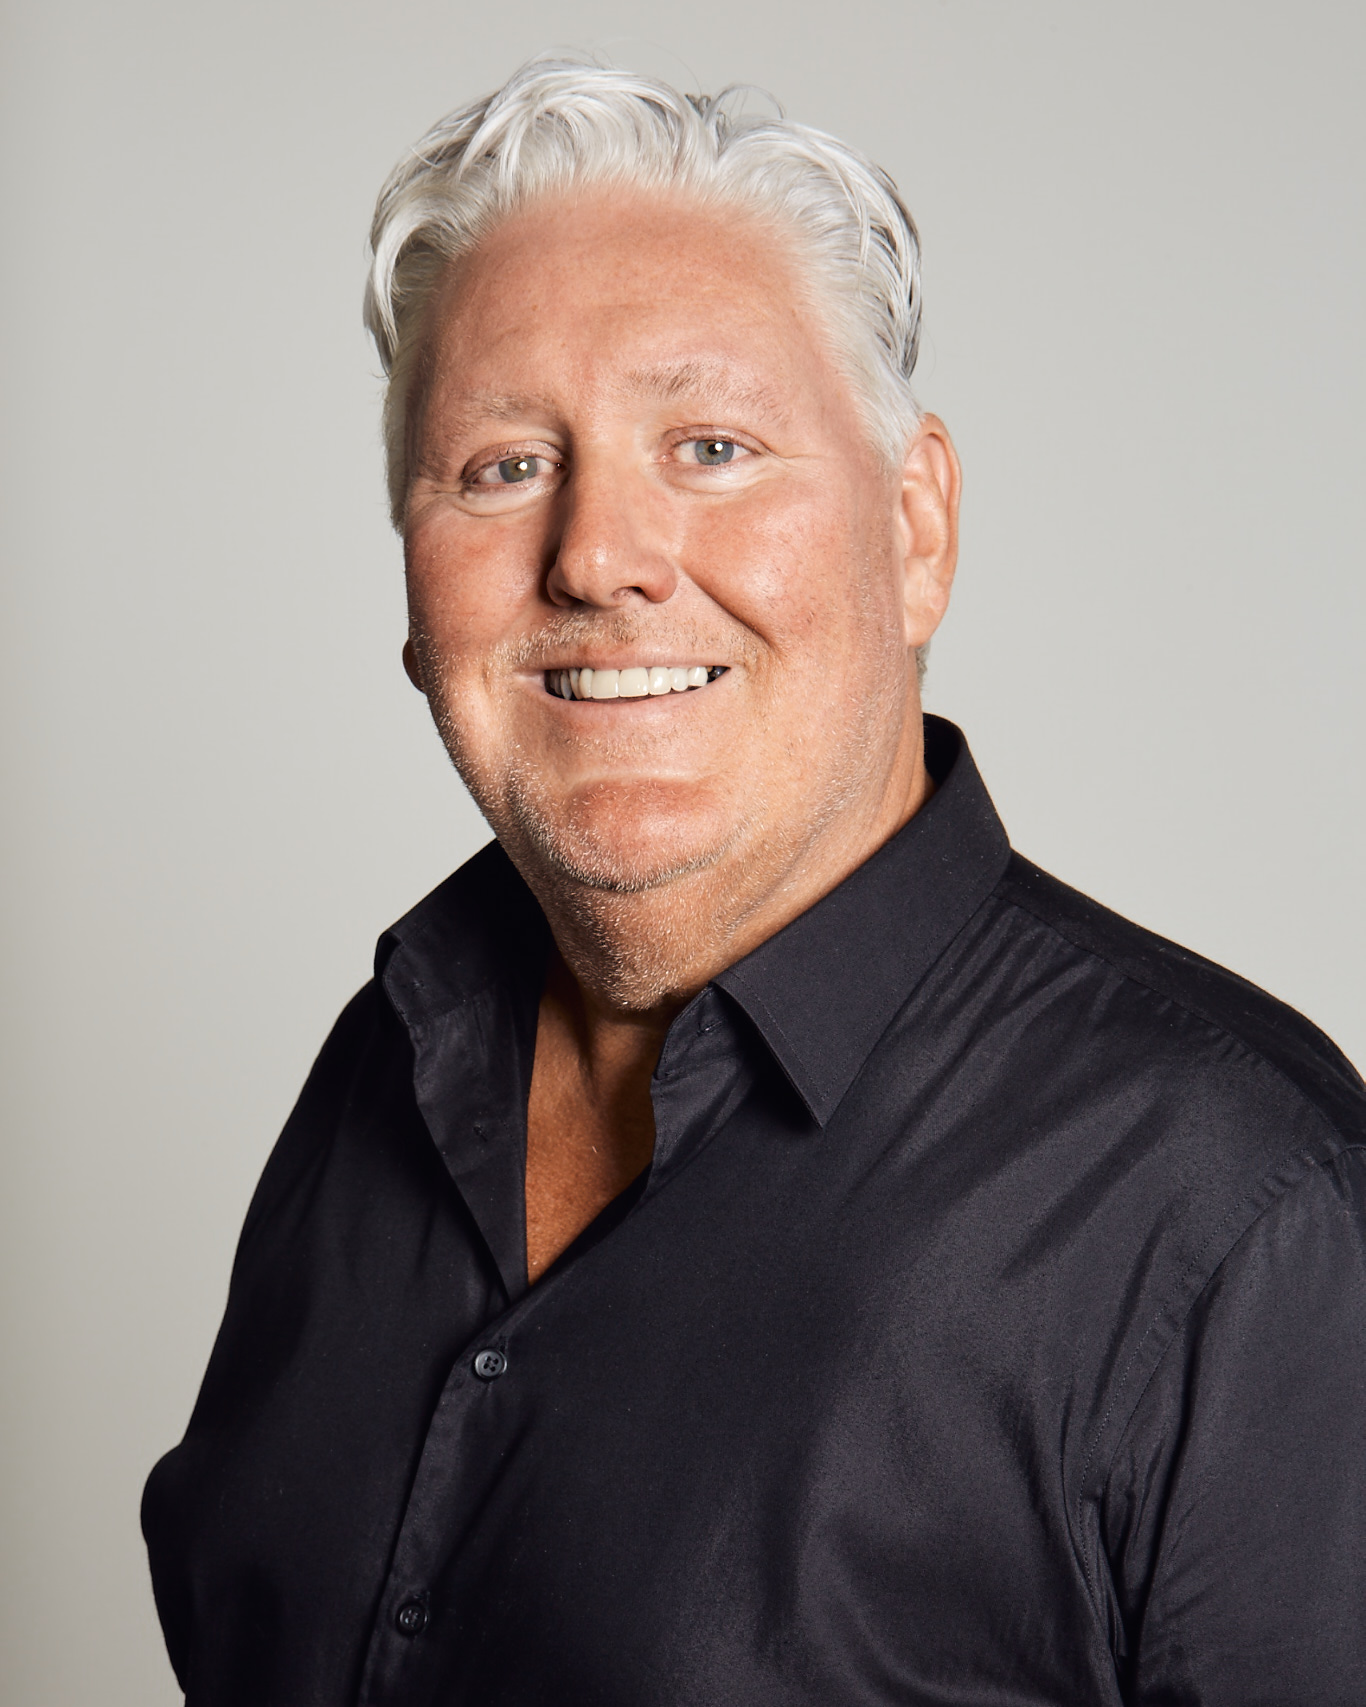 Steven Henley Announced as New Director of Education for Pravana